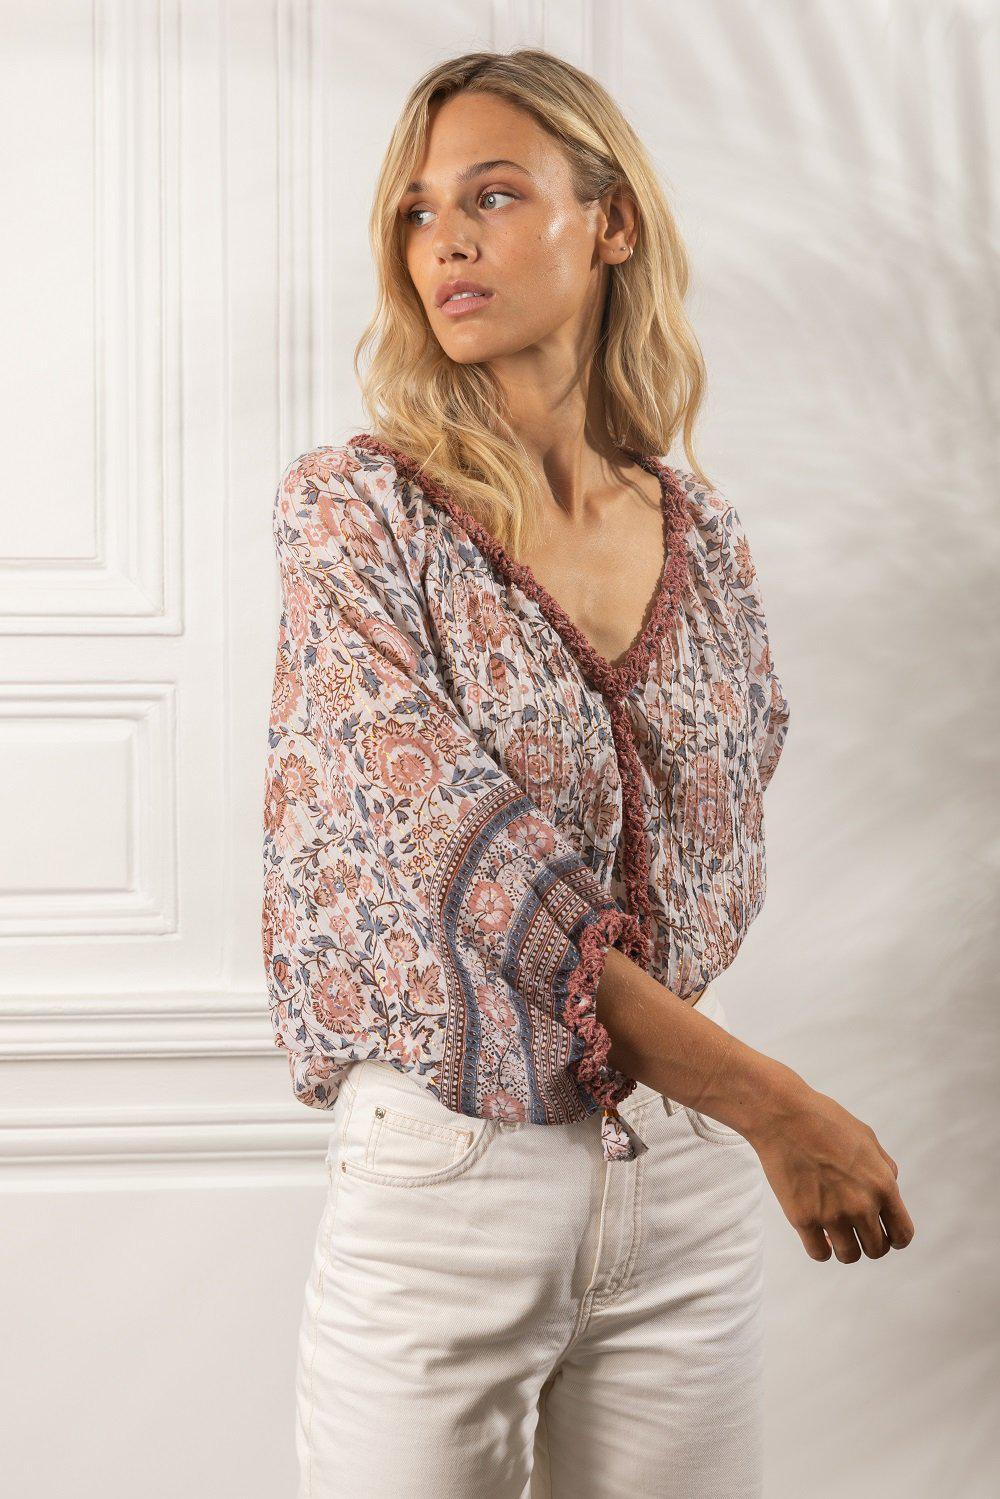 Top Blouse Ariel Pleated White Pink Celery